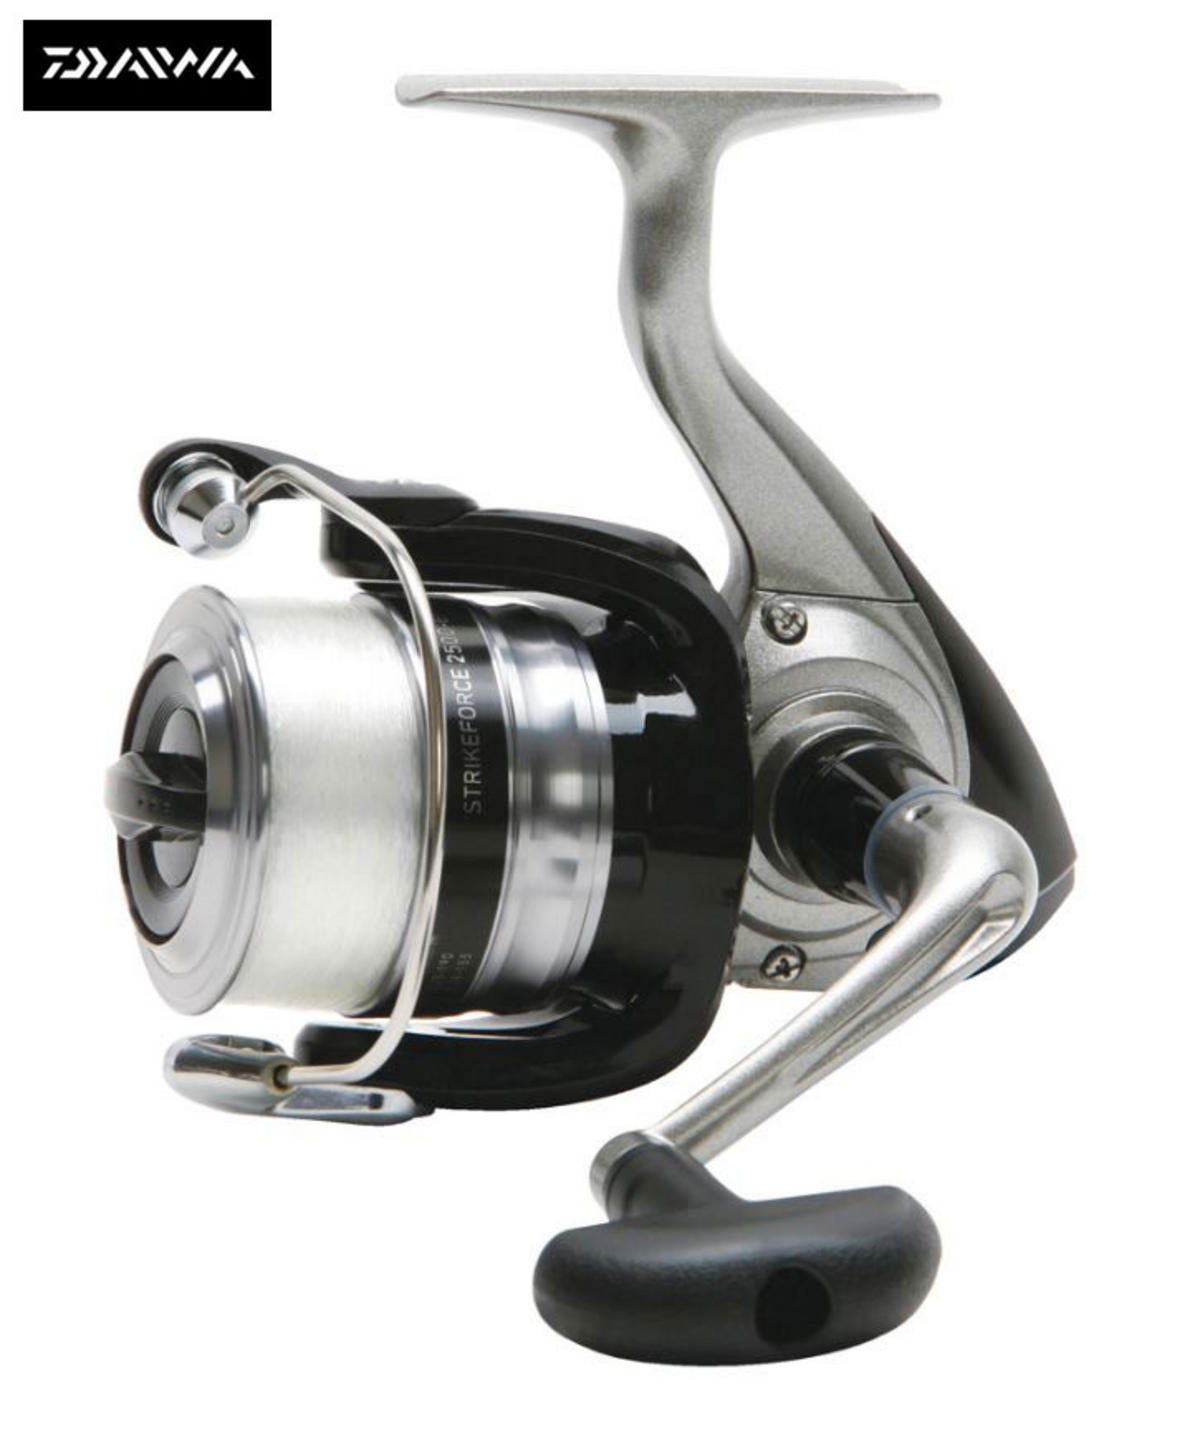 Special Offer Daiwa Strikeforce 2500 Fishing Reel Fully Loaded with Line